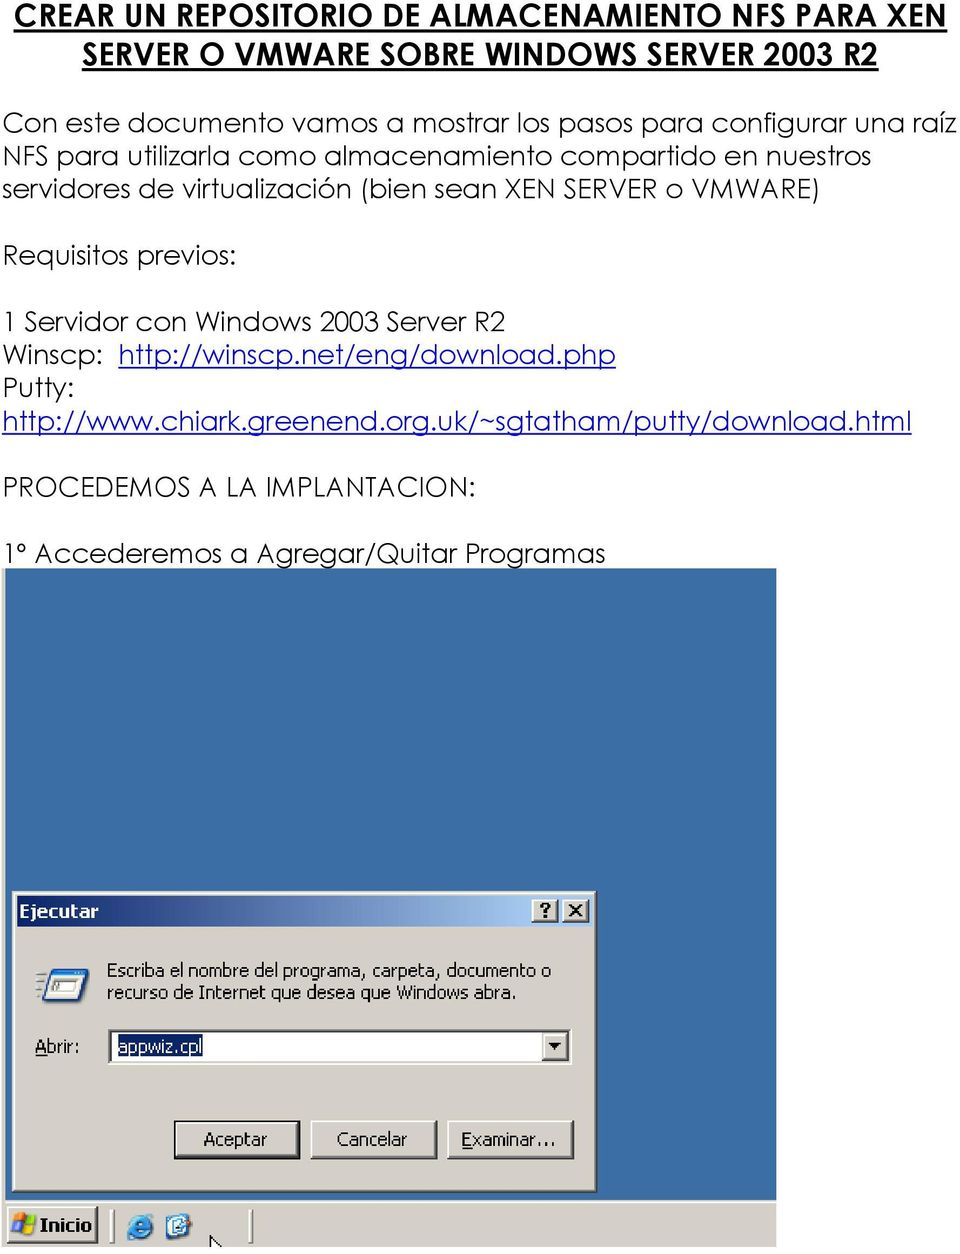 sean XEN SERVER o VMWARE) Requisitos previos: 1 Servidor con Windows 2003 Server R2 Winscp: http://winscp.net/eng/download.